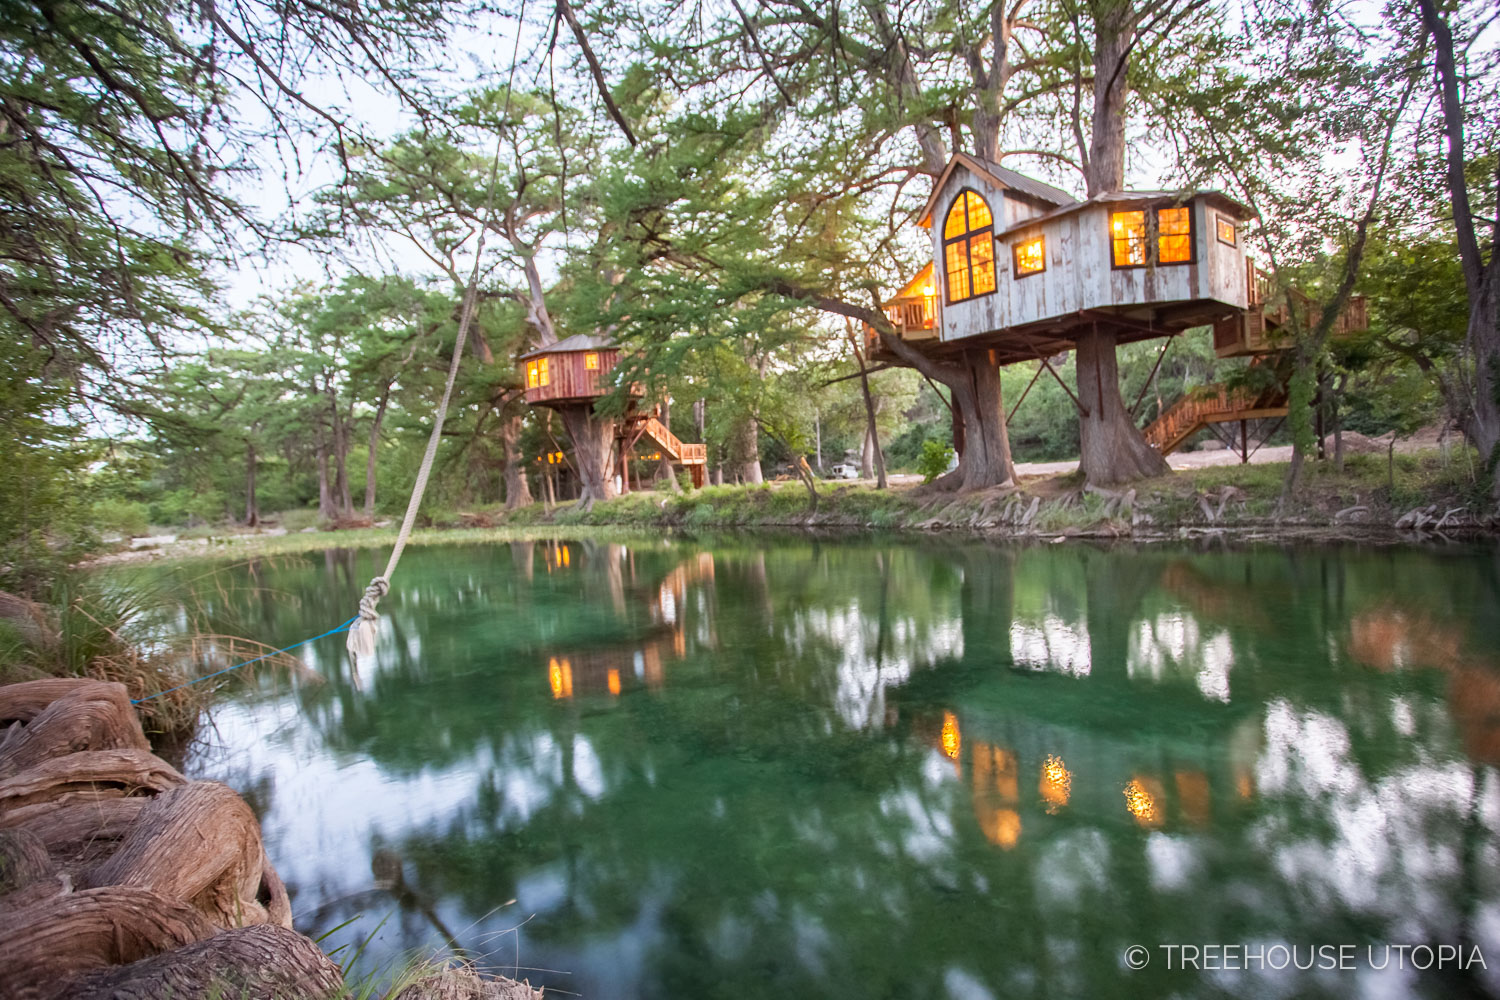 Treehouses at Treehouse Utopia